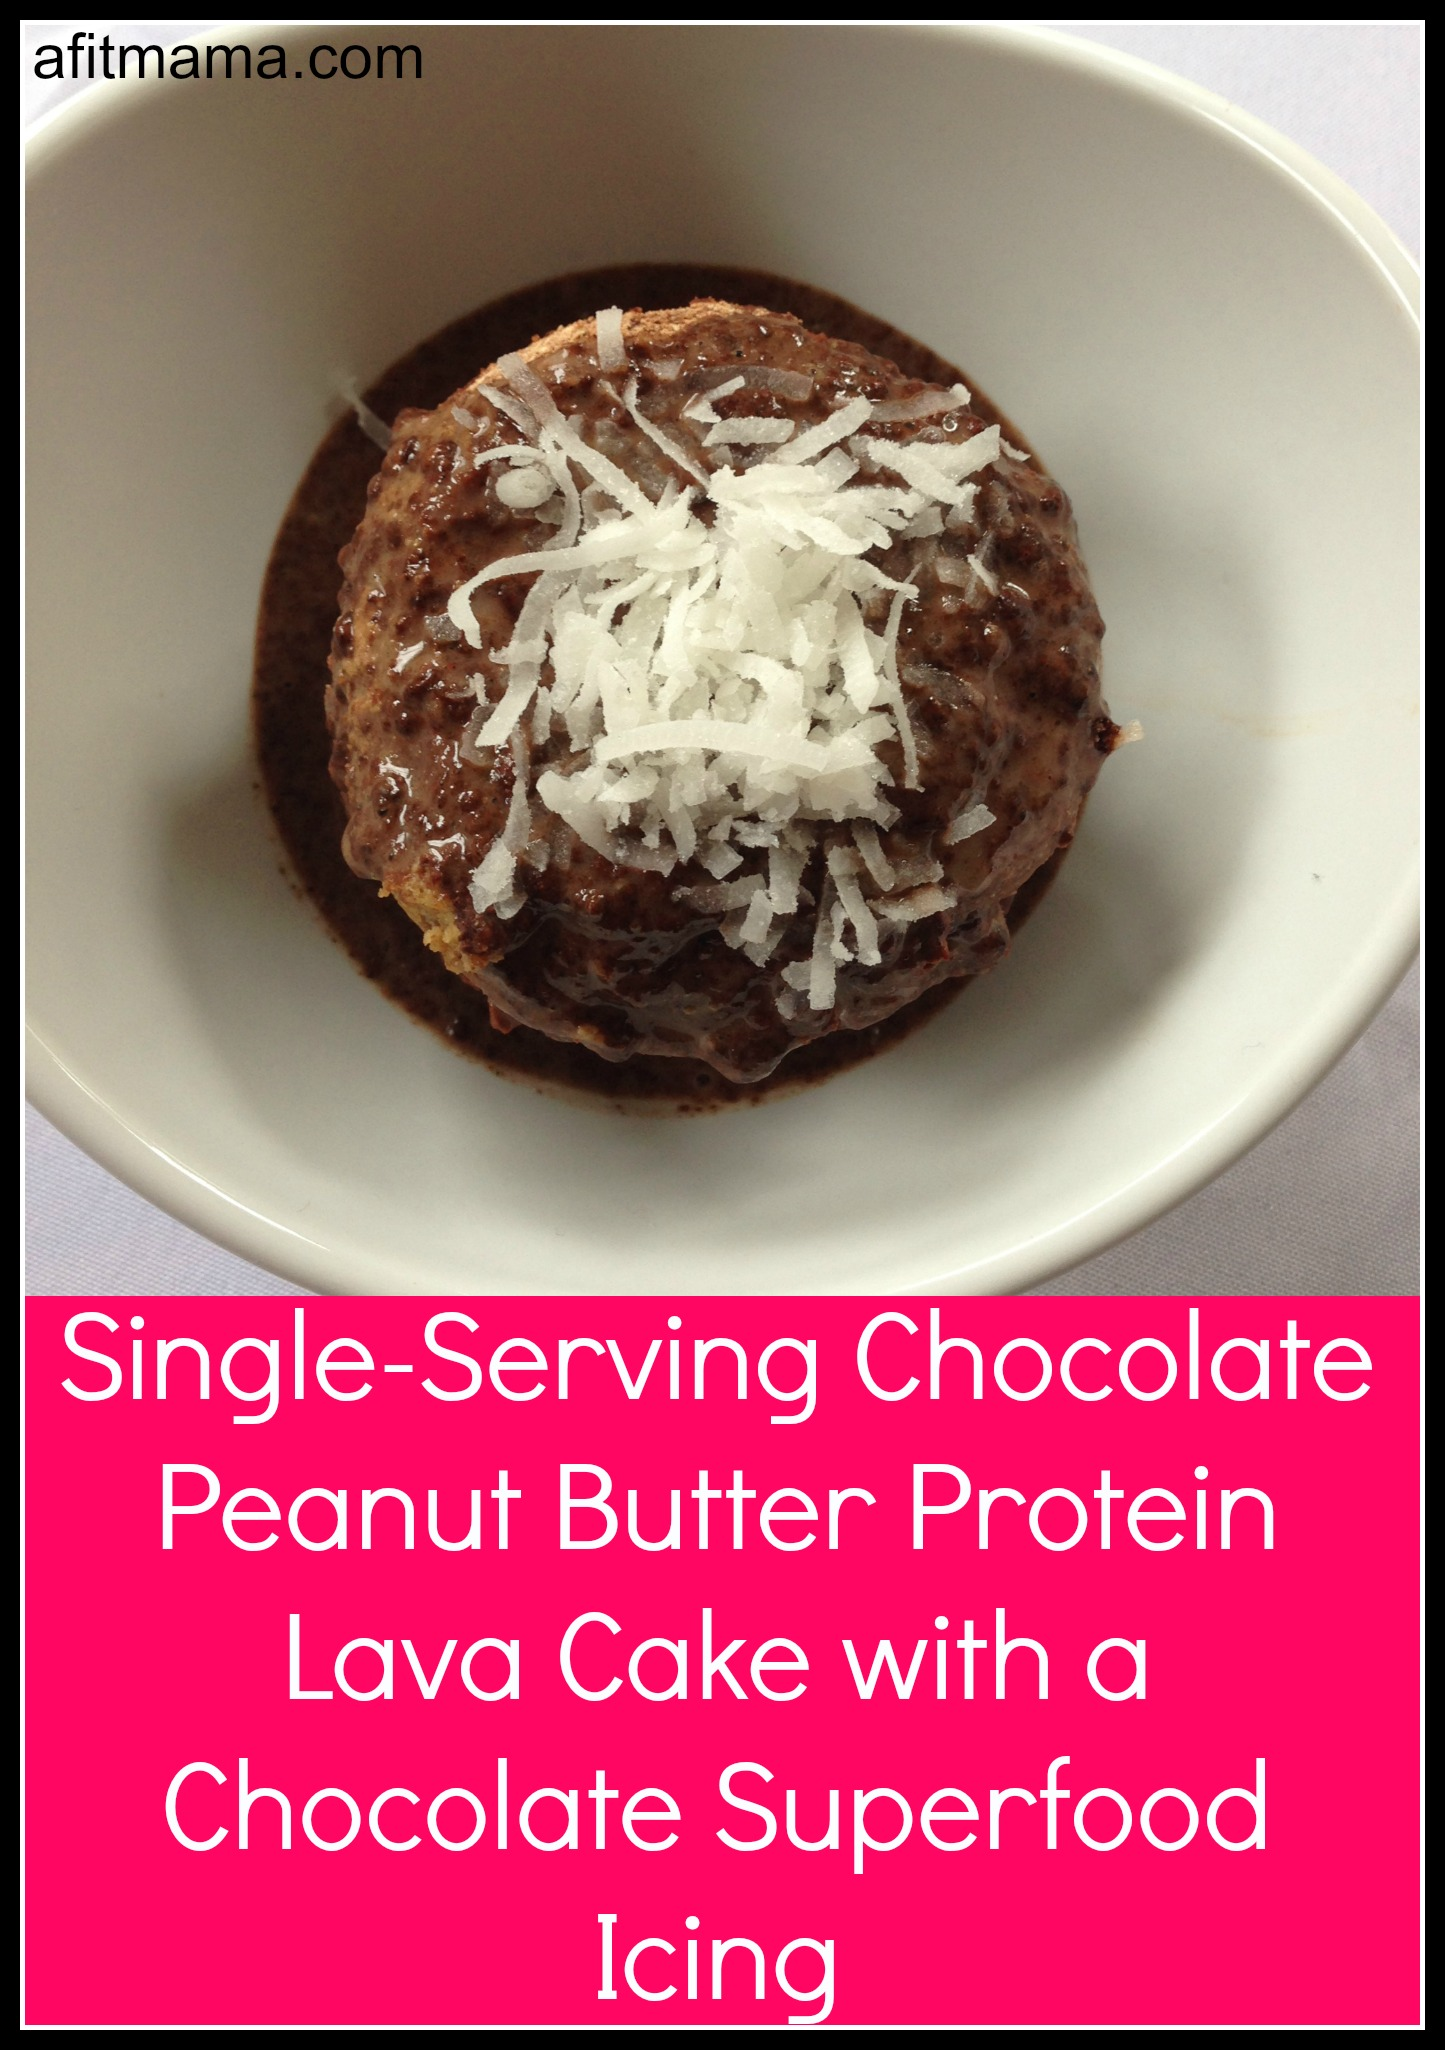 Single-Serving Chocolate Peanut Butter Protein Lava Cake with a Chocolate Superfood Icing